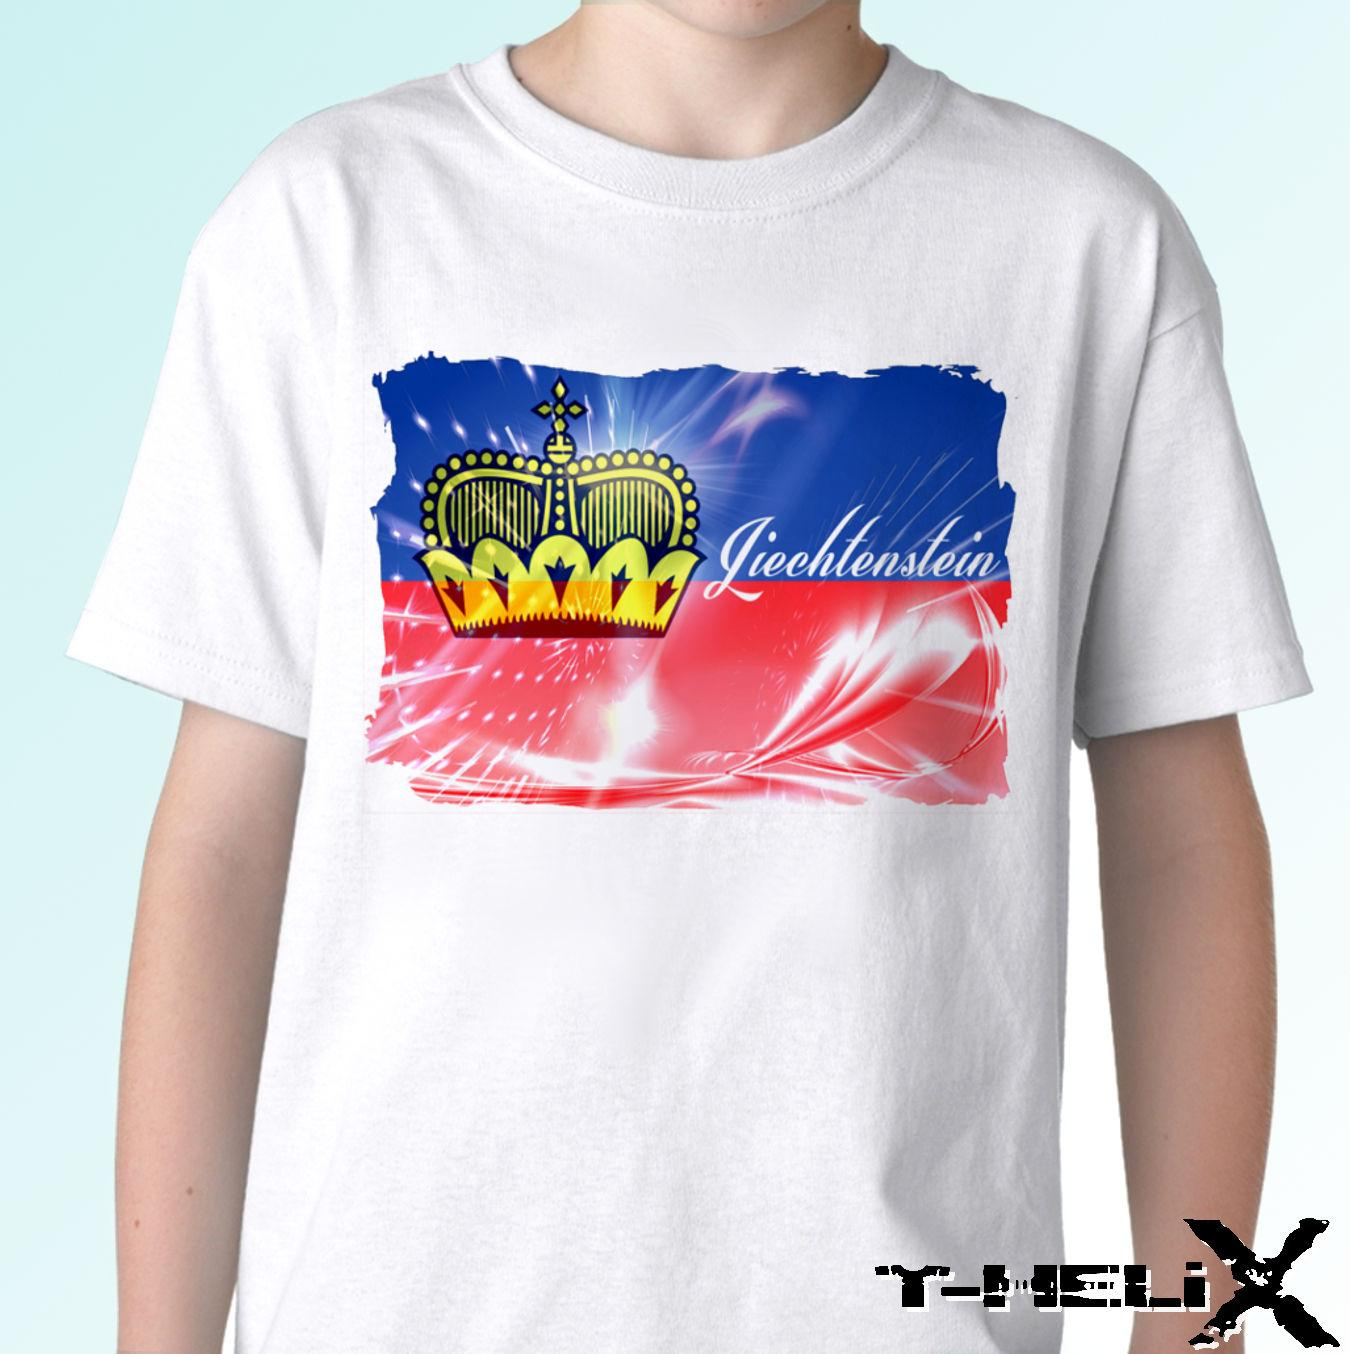 Liechtenstein Flag - White T Shirt Top Country Design - Mens Womens